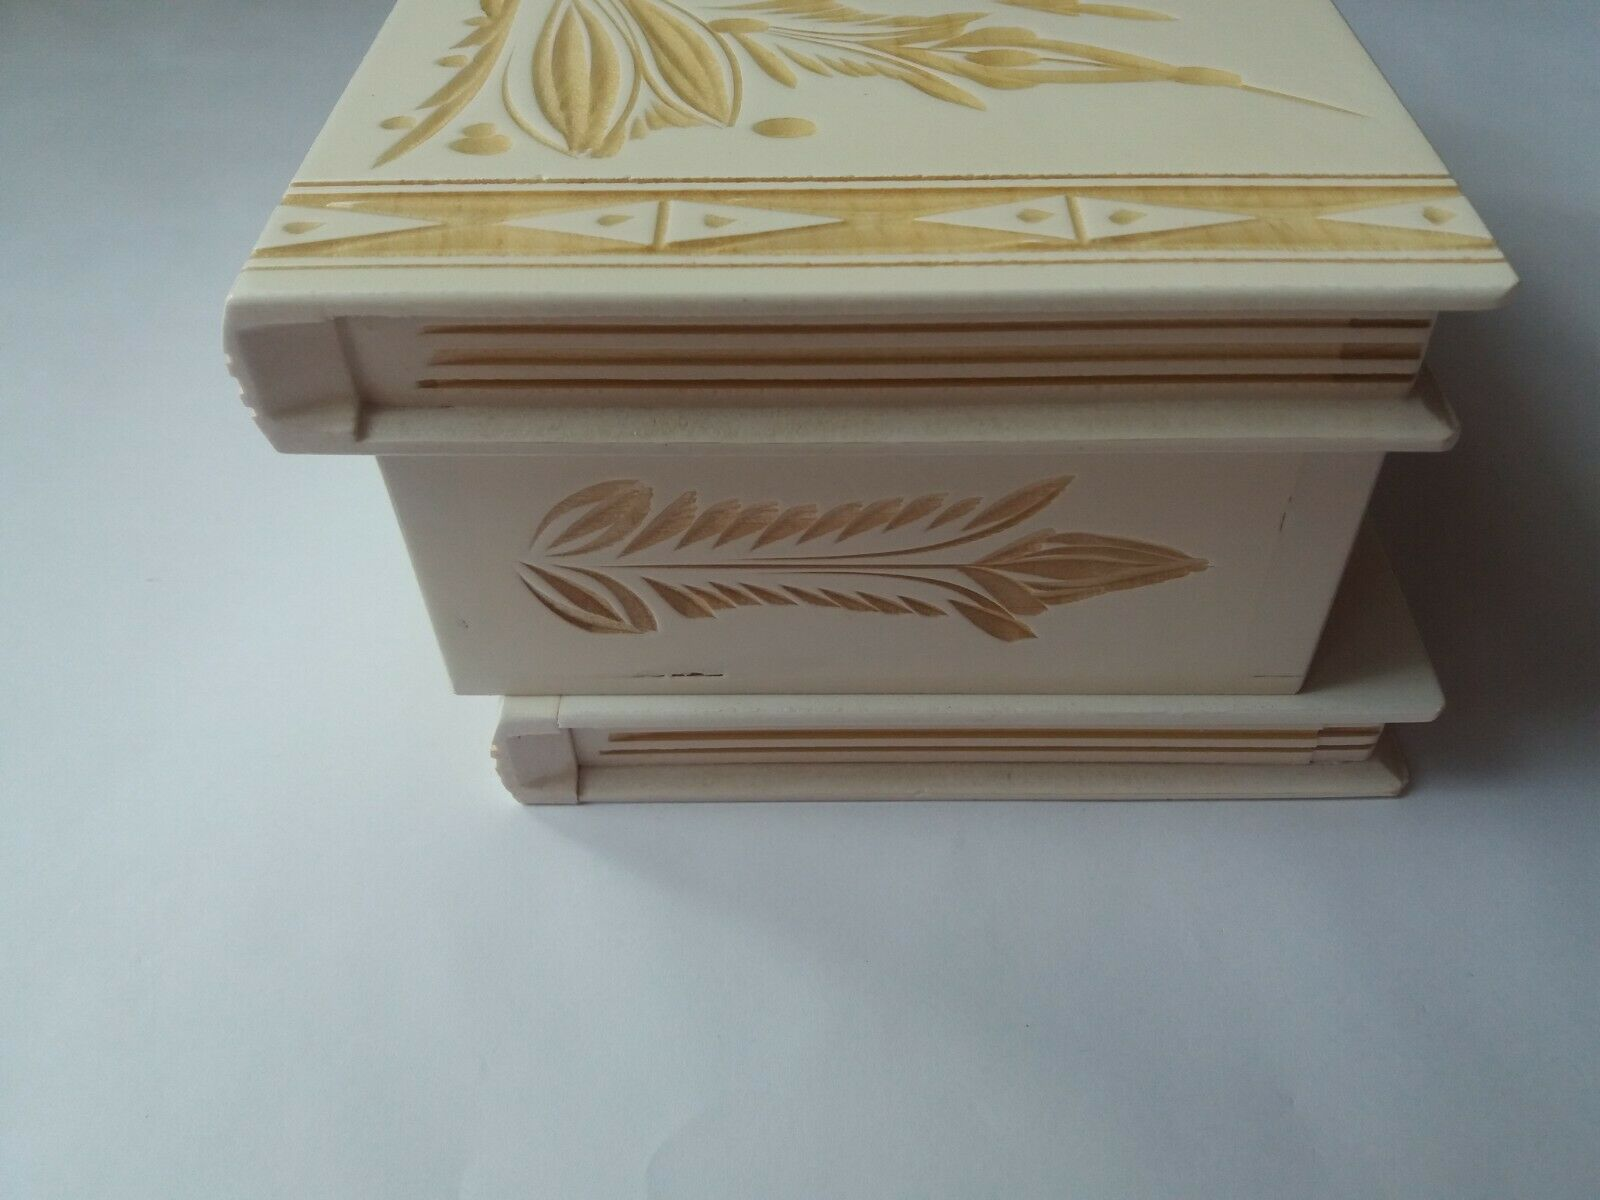 Big huge huge huge Weiß wooden puzzle box with secret opening storage for jewelry Gold 45a495